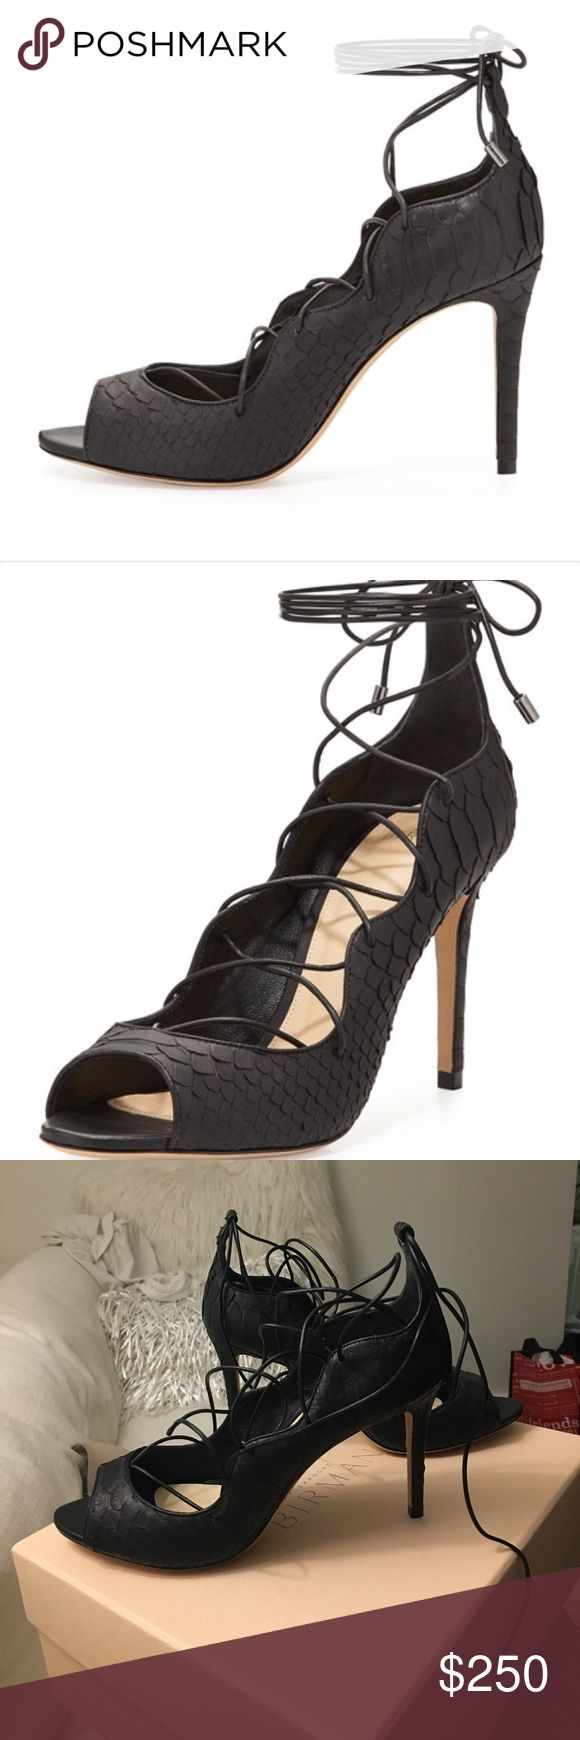 Black sandals 2 inch heel